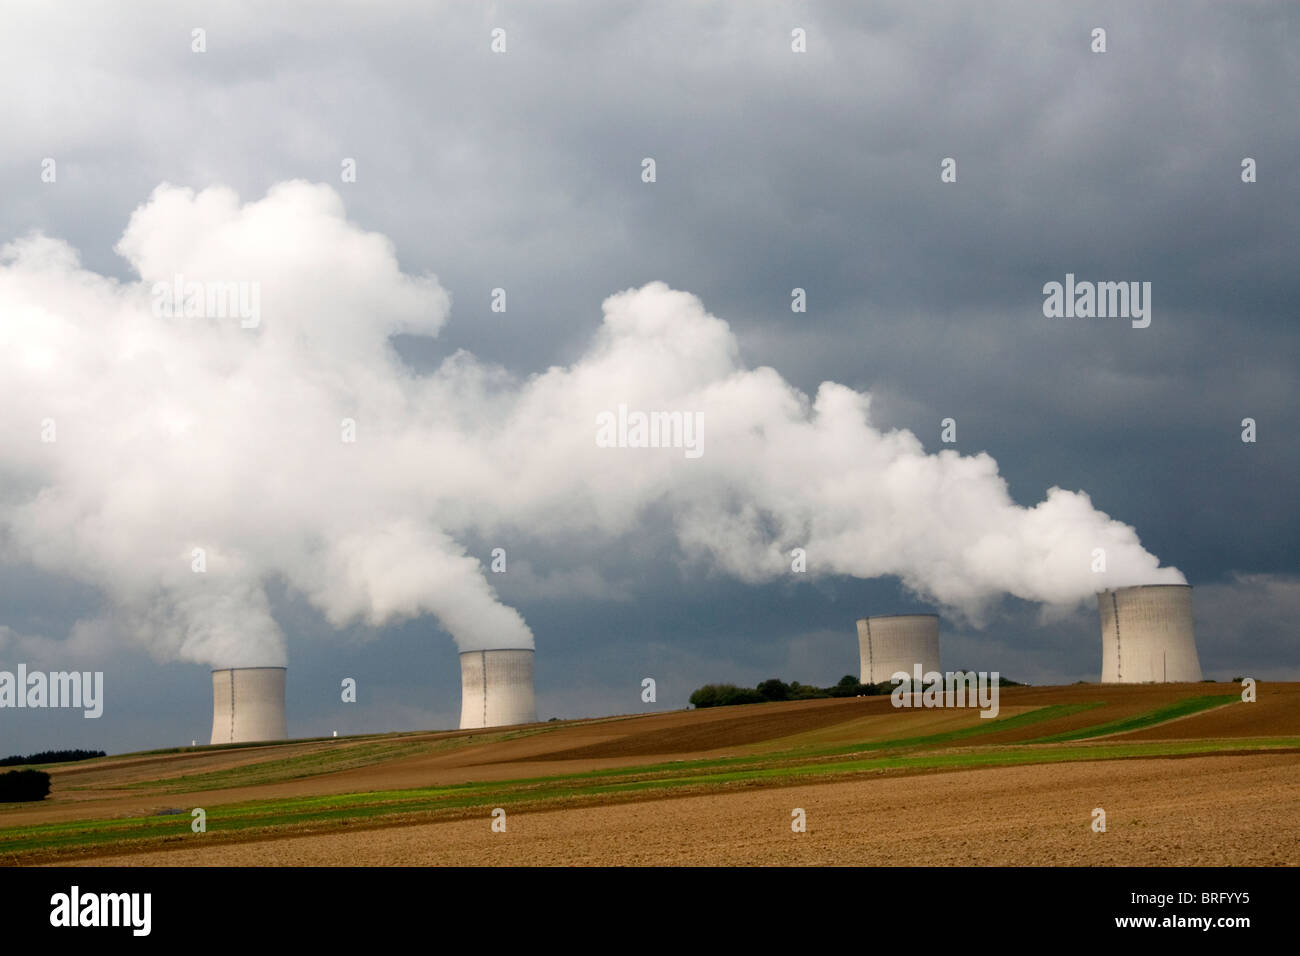 The Cattenom Nuclear Power Plant located in the Cattenom commune along the Moselle River in France. - Stock Image